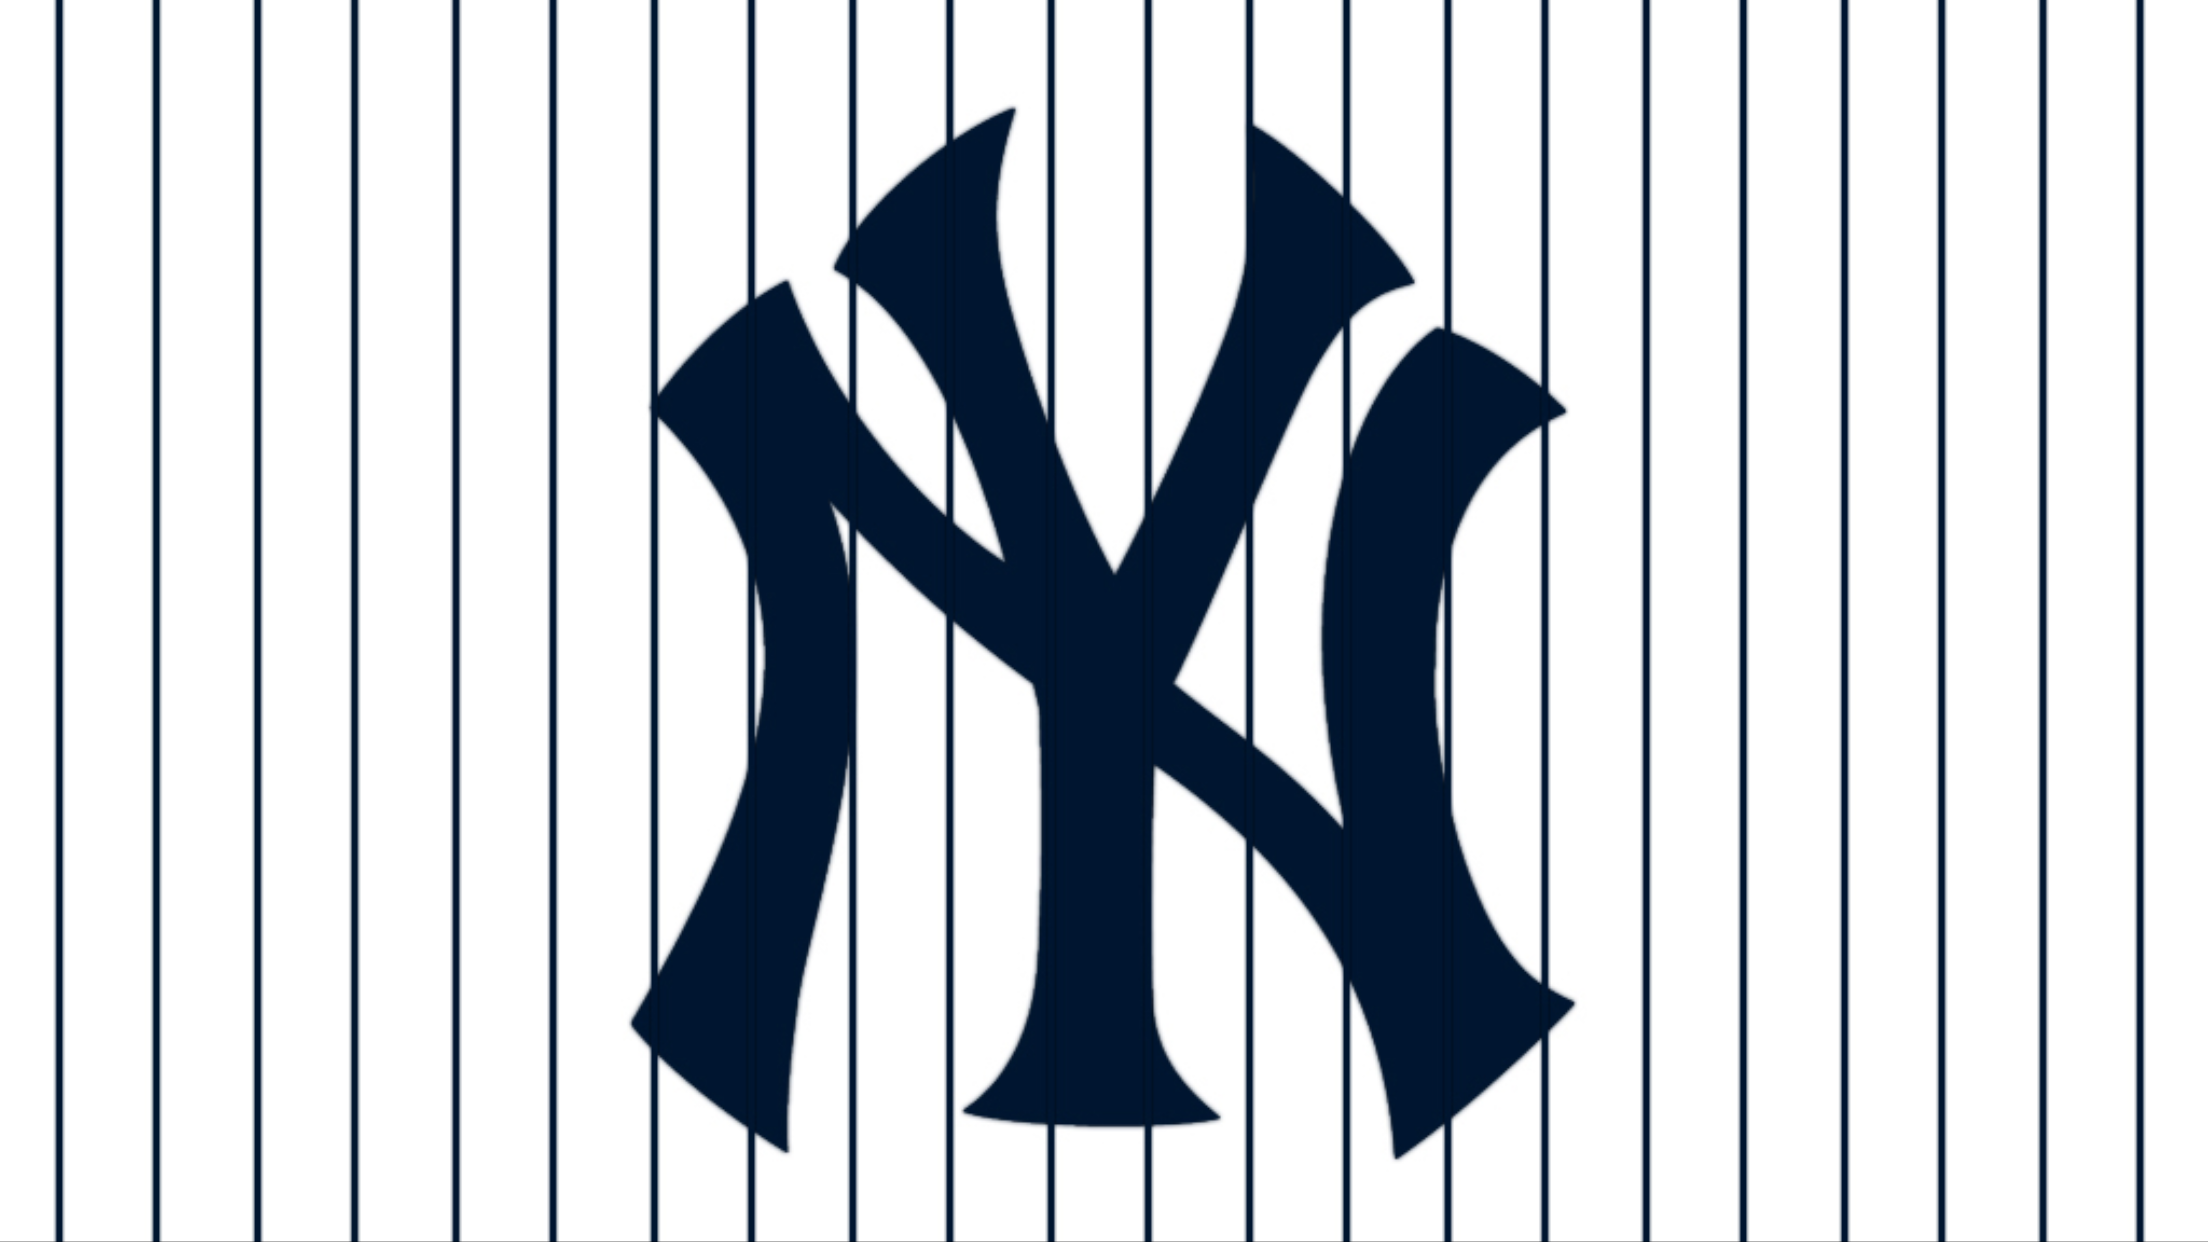 Yankees Ny Yanks New York Yankees Logo Yankees Logo New York Yankees